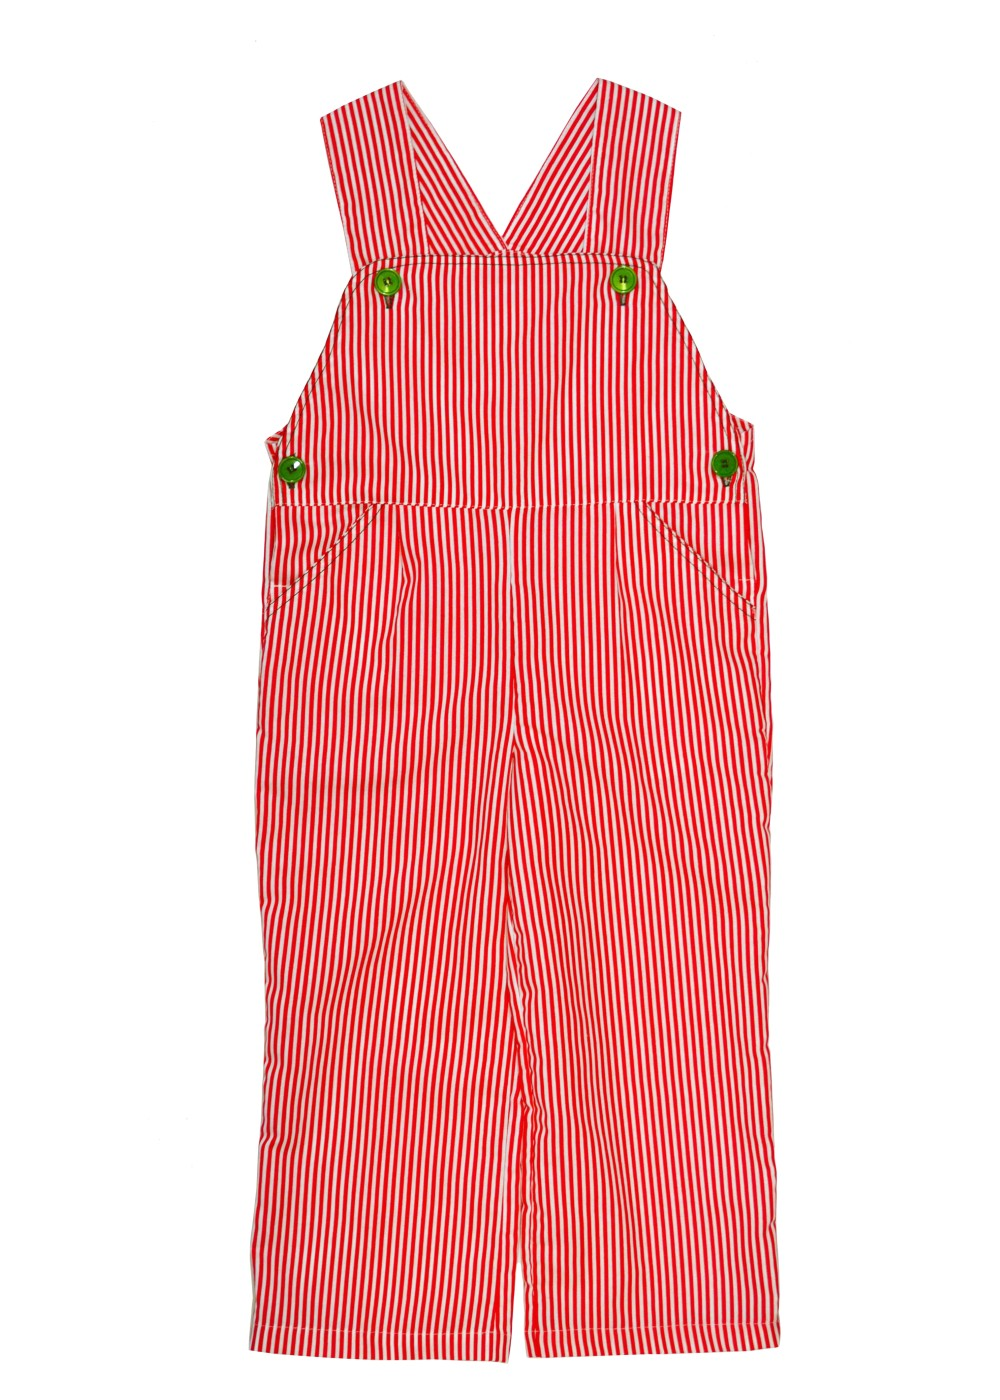 Kids Striped Unisex Overalls